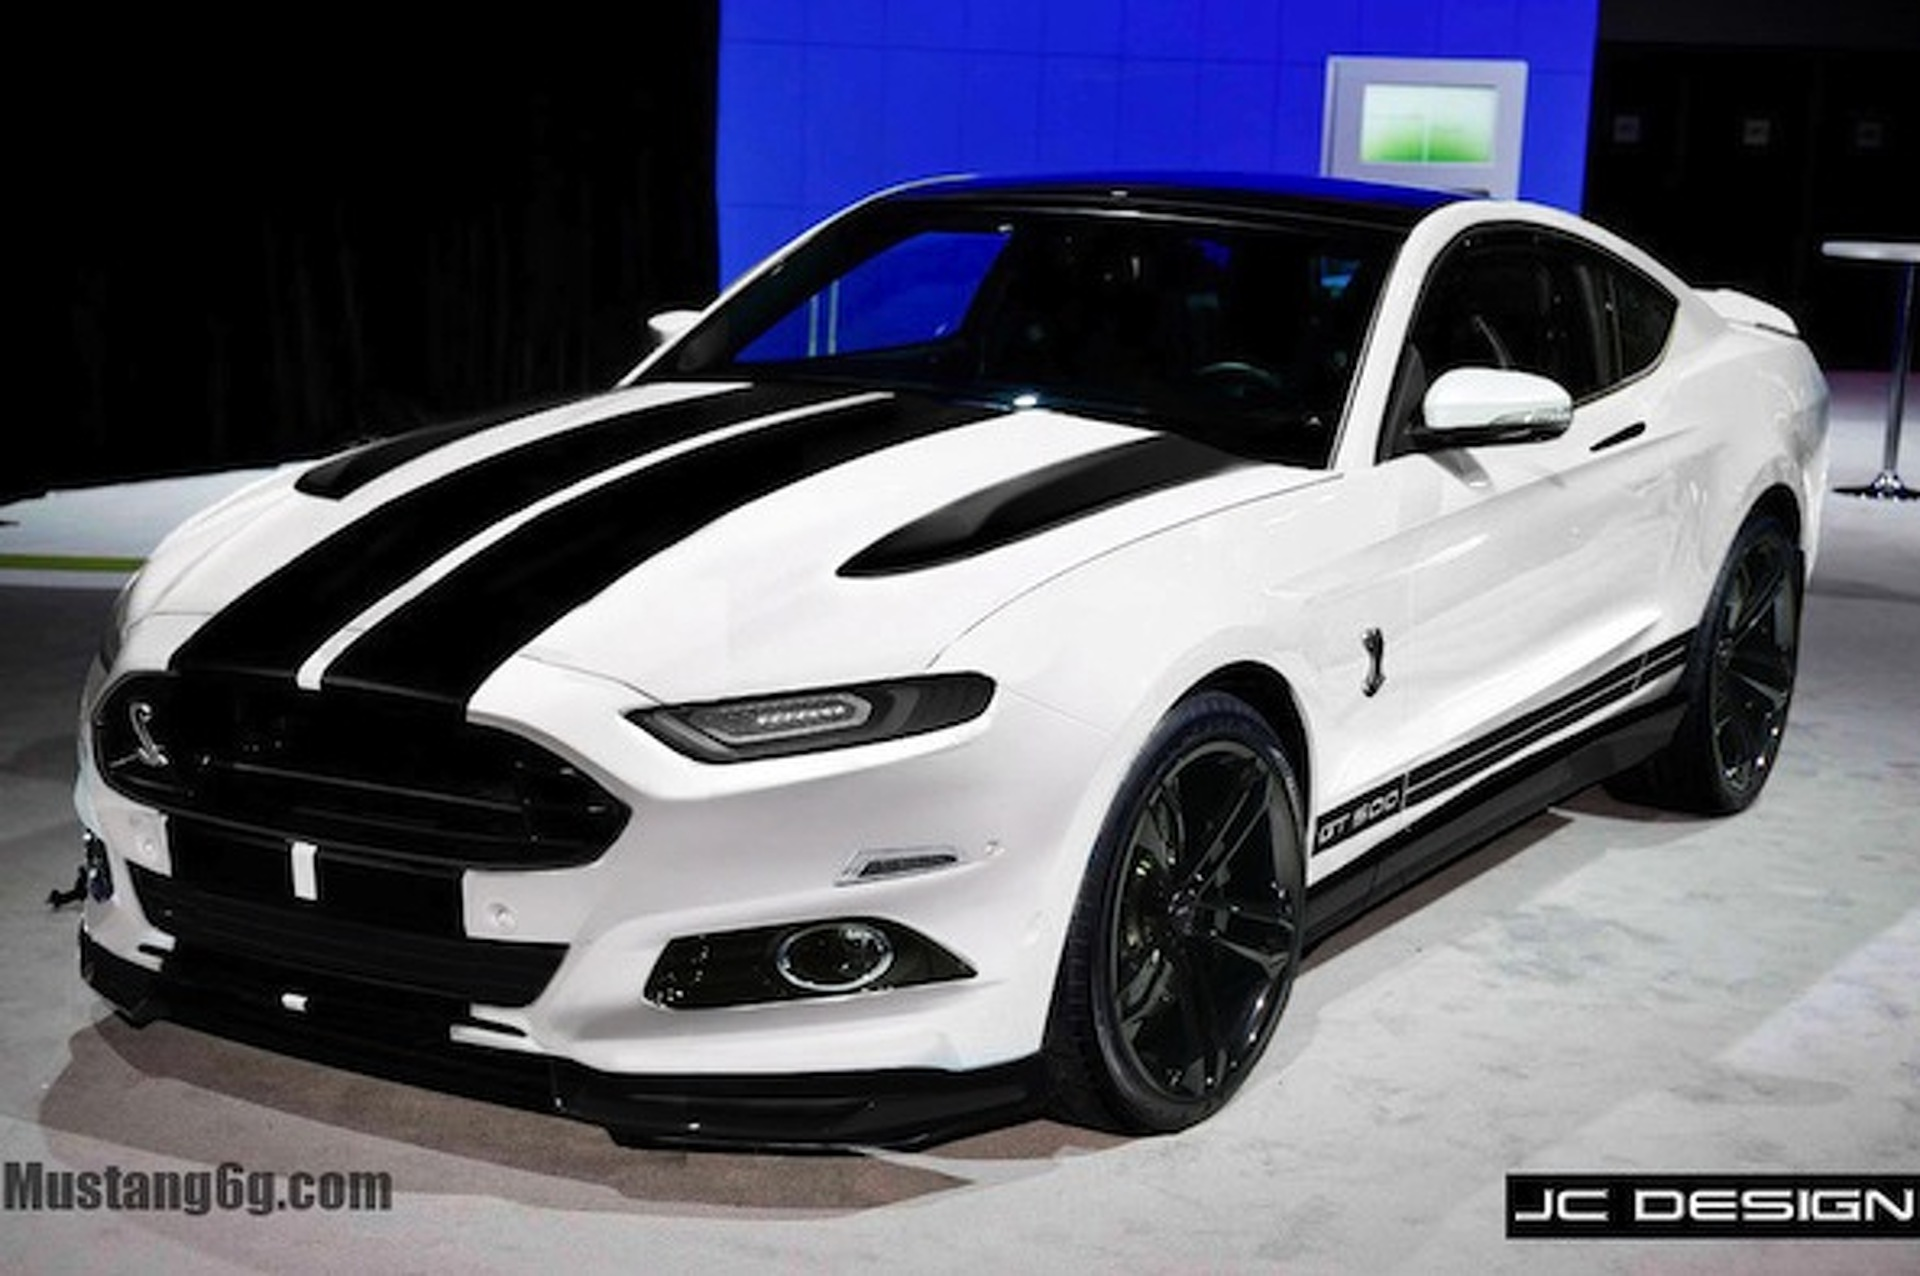 2015 Mustang Shelby GT500 Gets Rendered